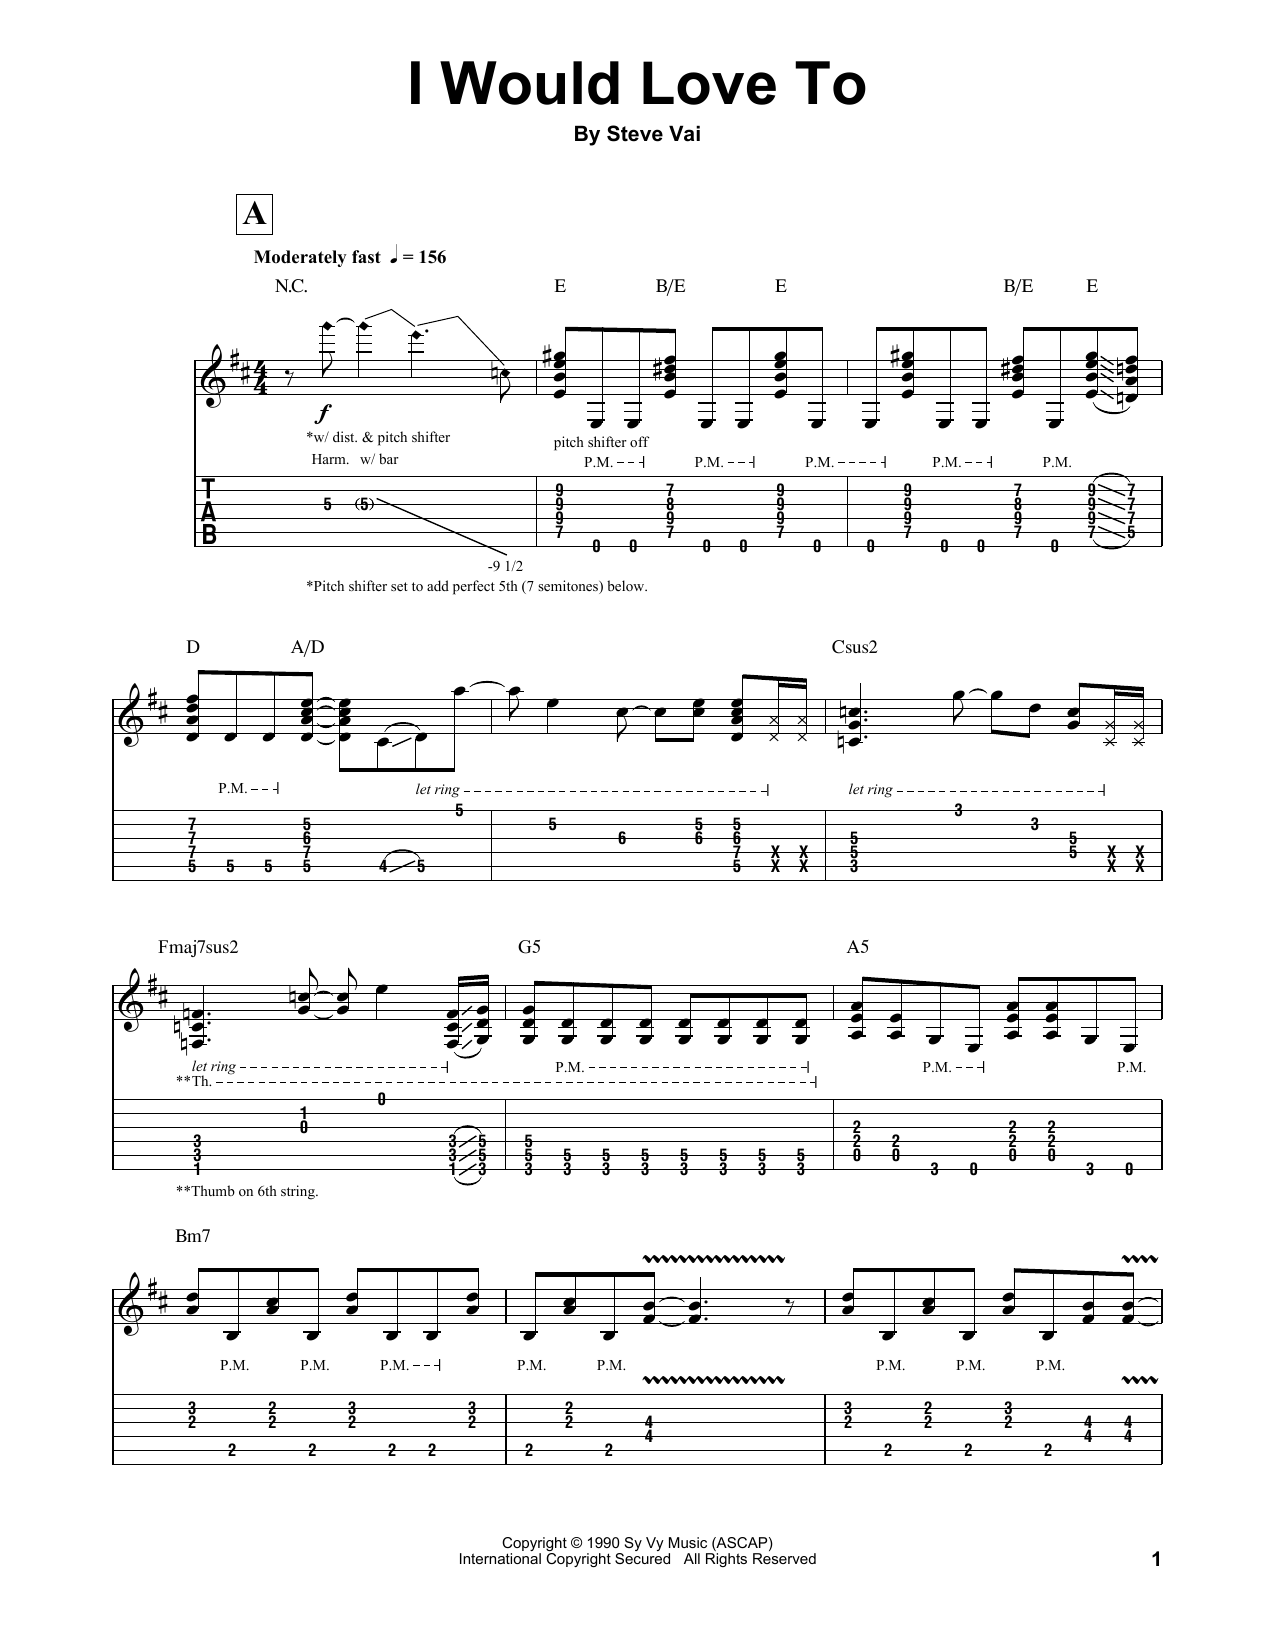 I Would Love To (Guitar Tab (Single Guitar))